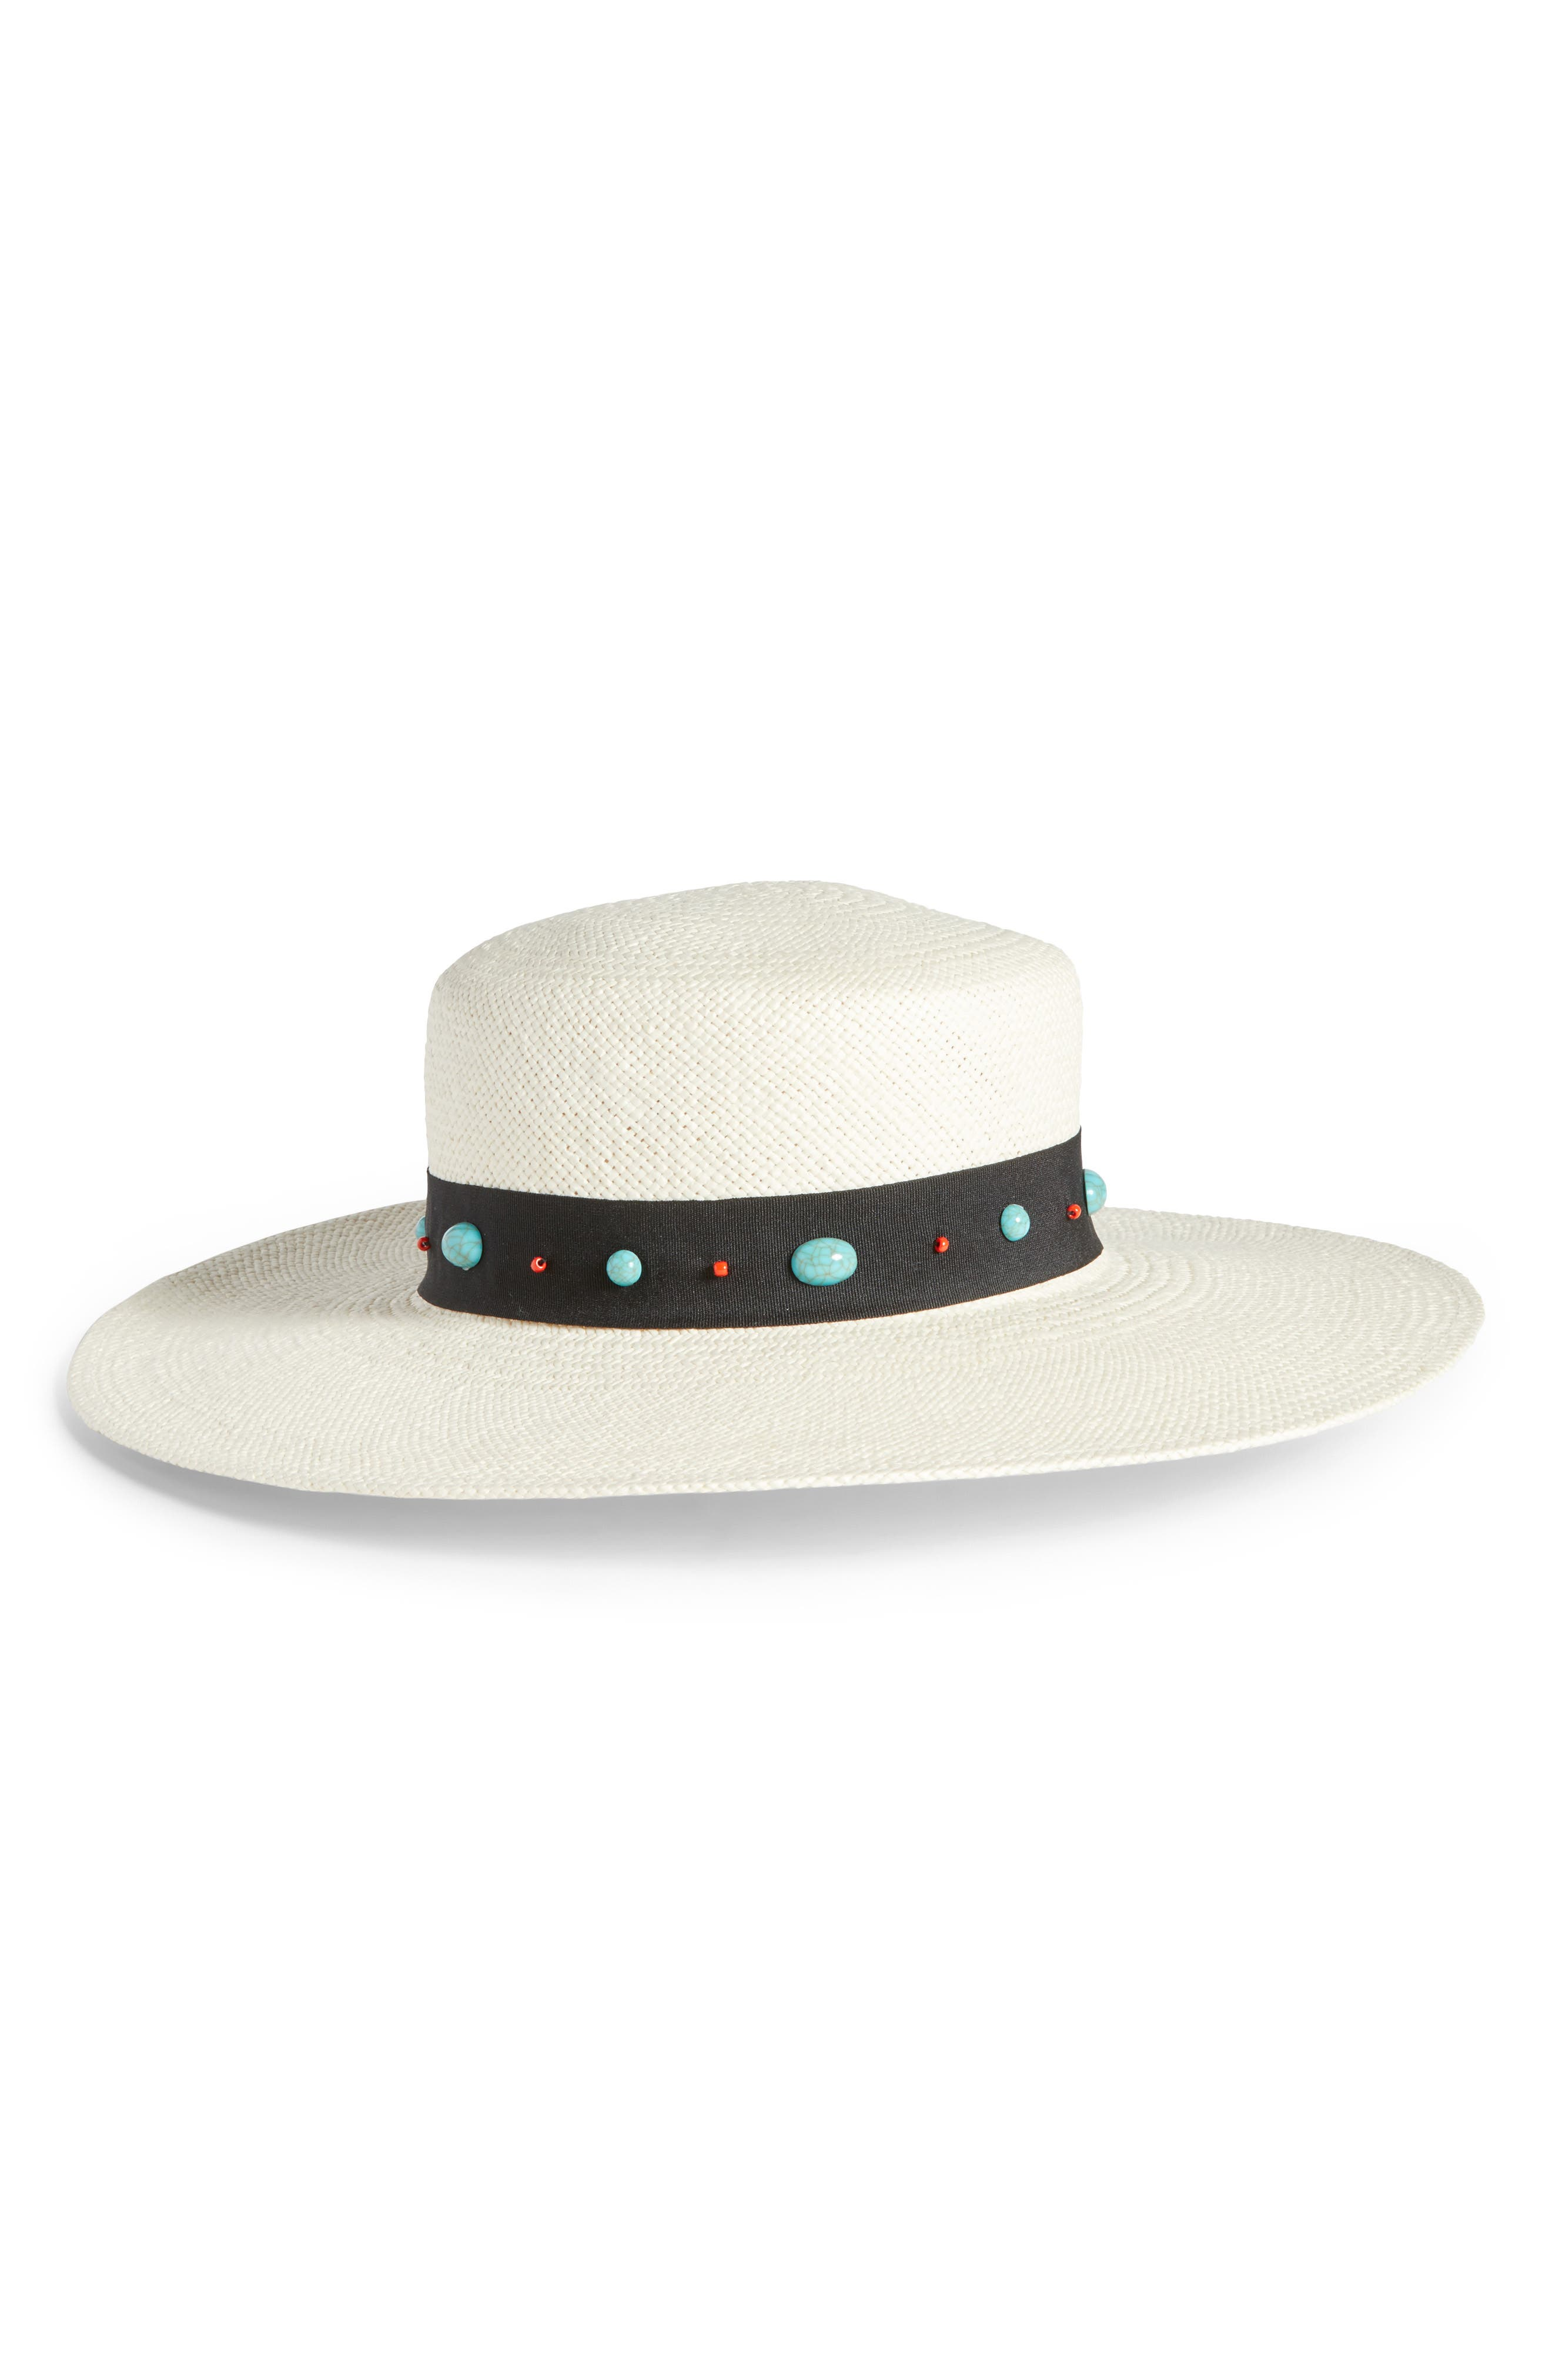 Western Straw Boater Hat,                         Main,                         color, 900